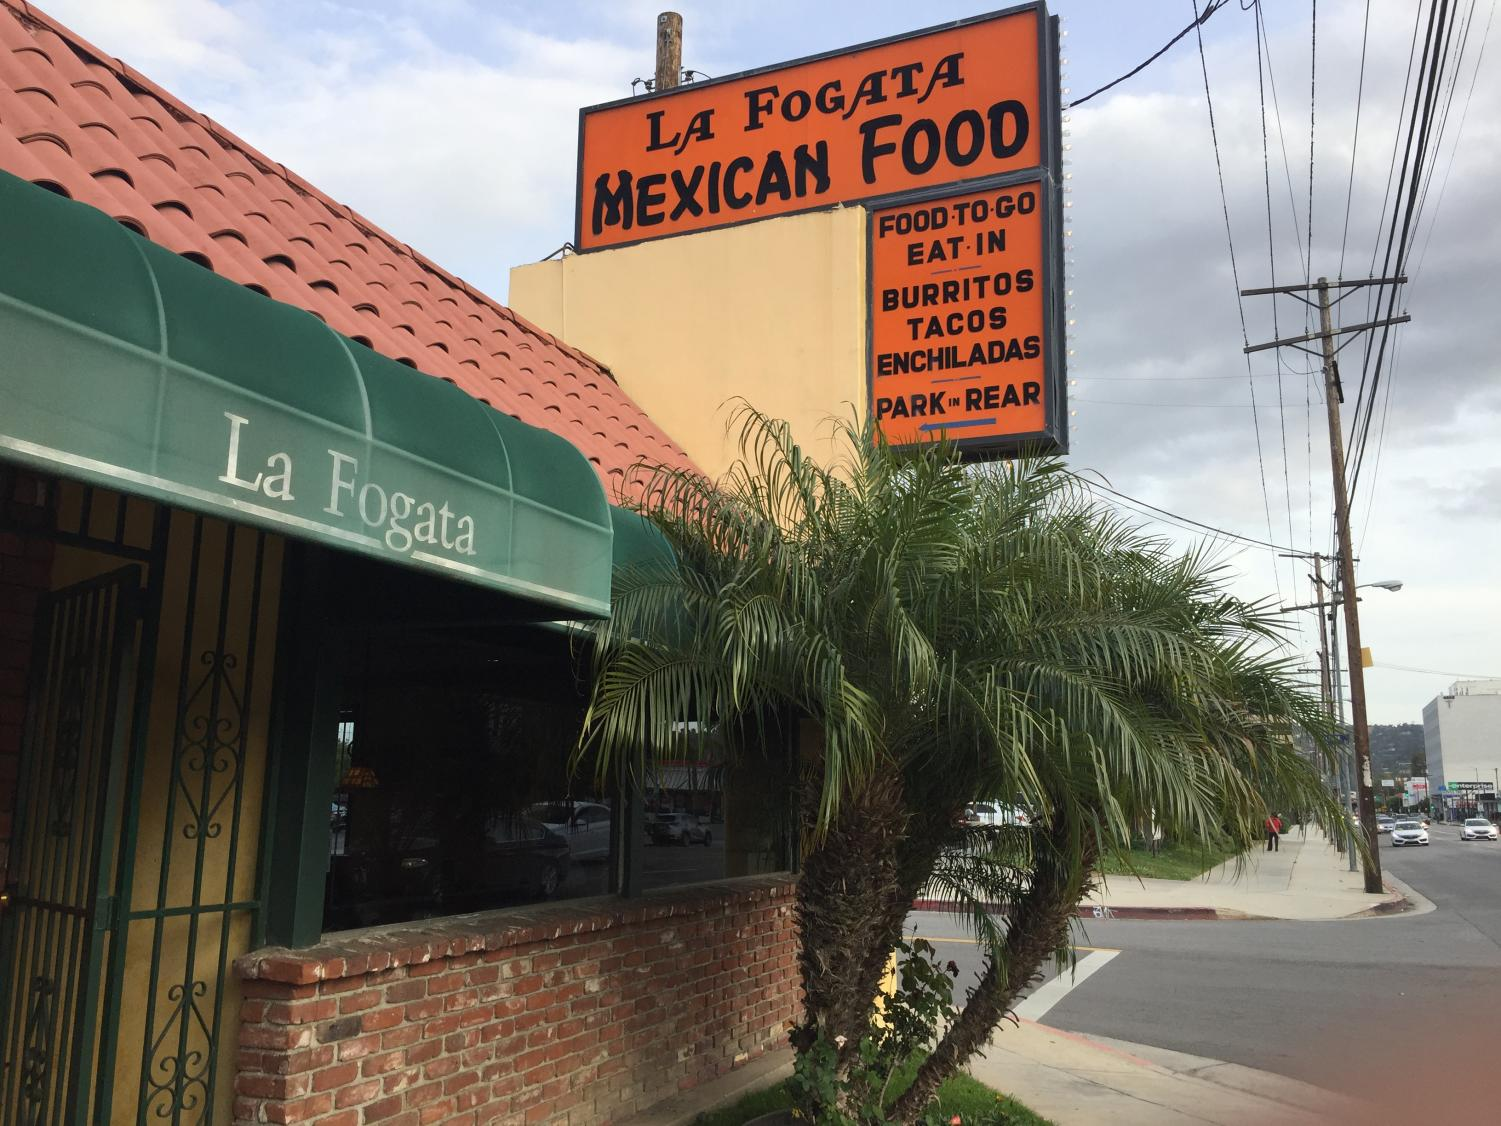 La Fogata is an authentic Mexican restaurant located on 5142 Van Nuys Blvd in Sherman Oaks, CA.